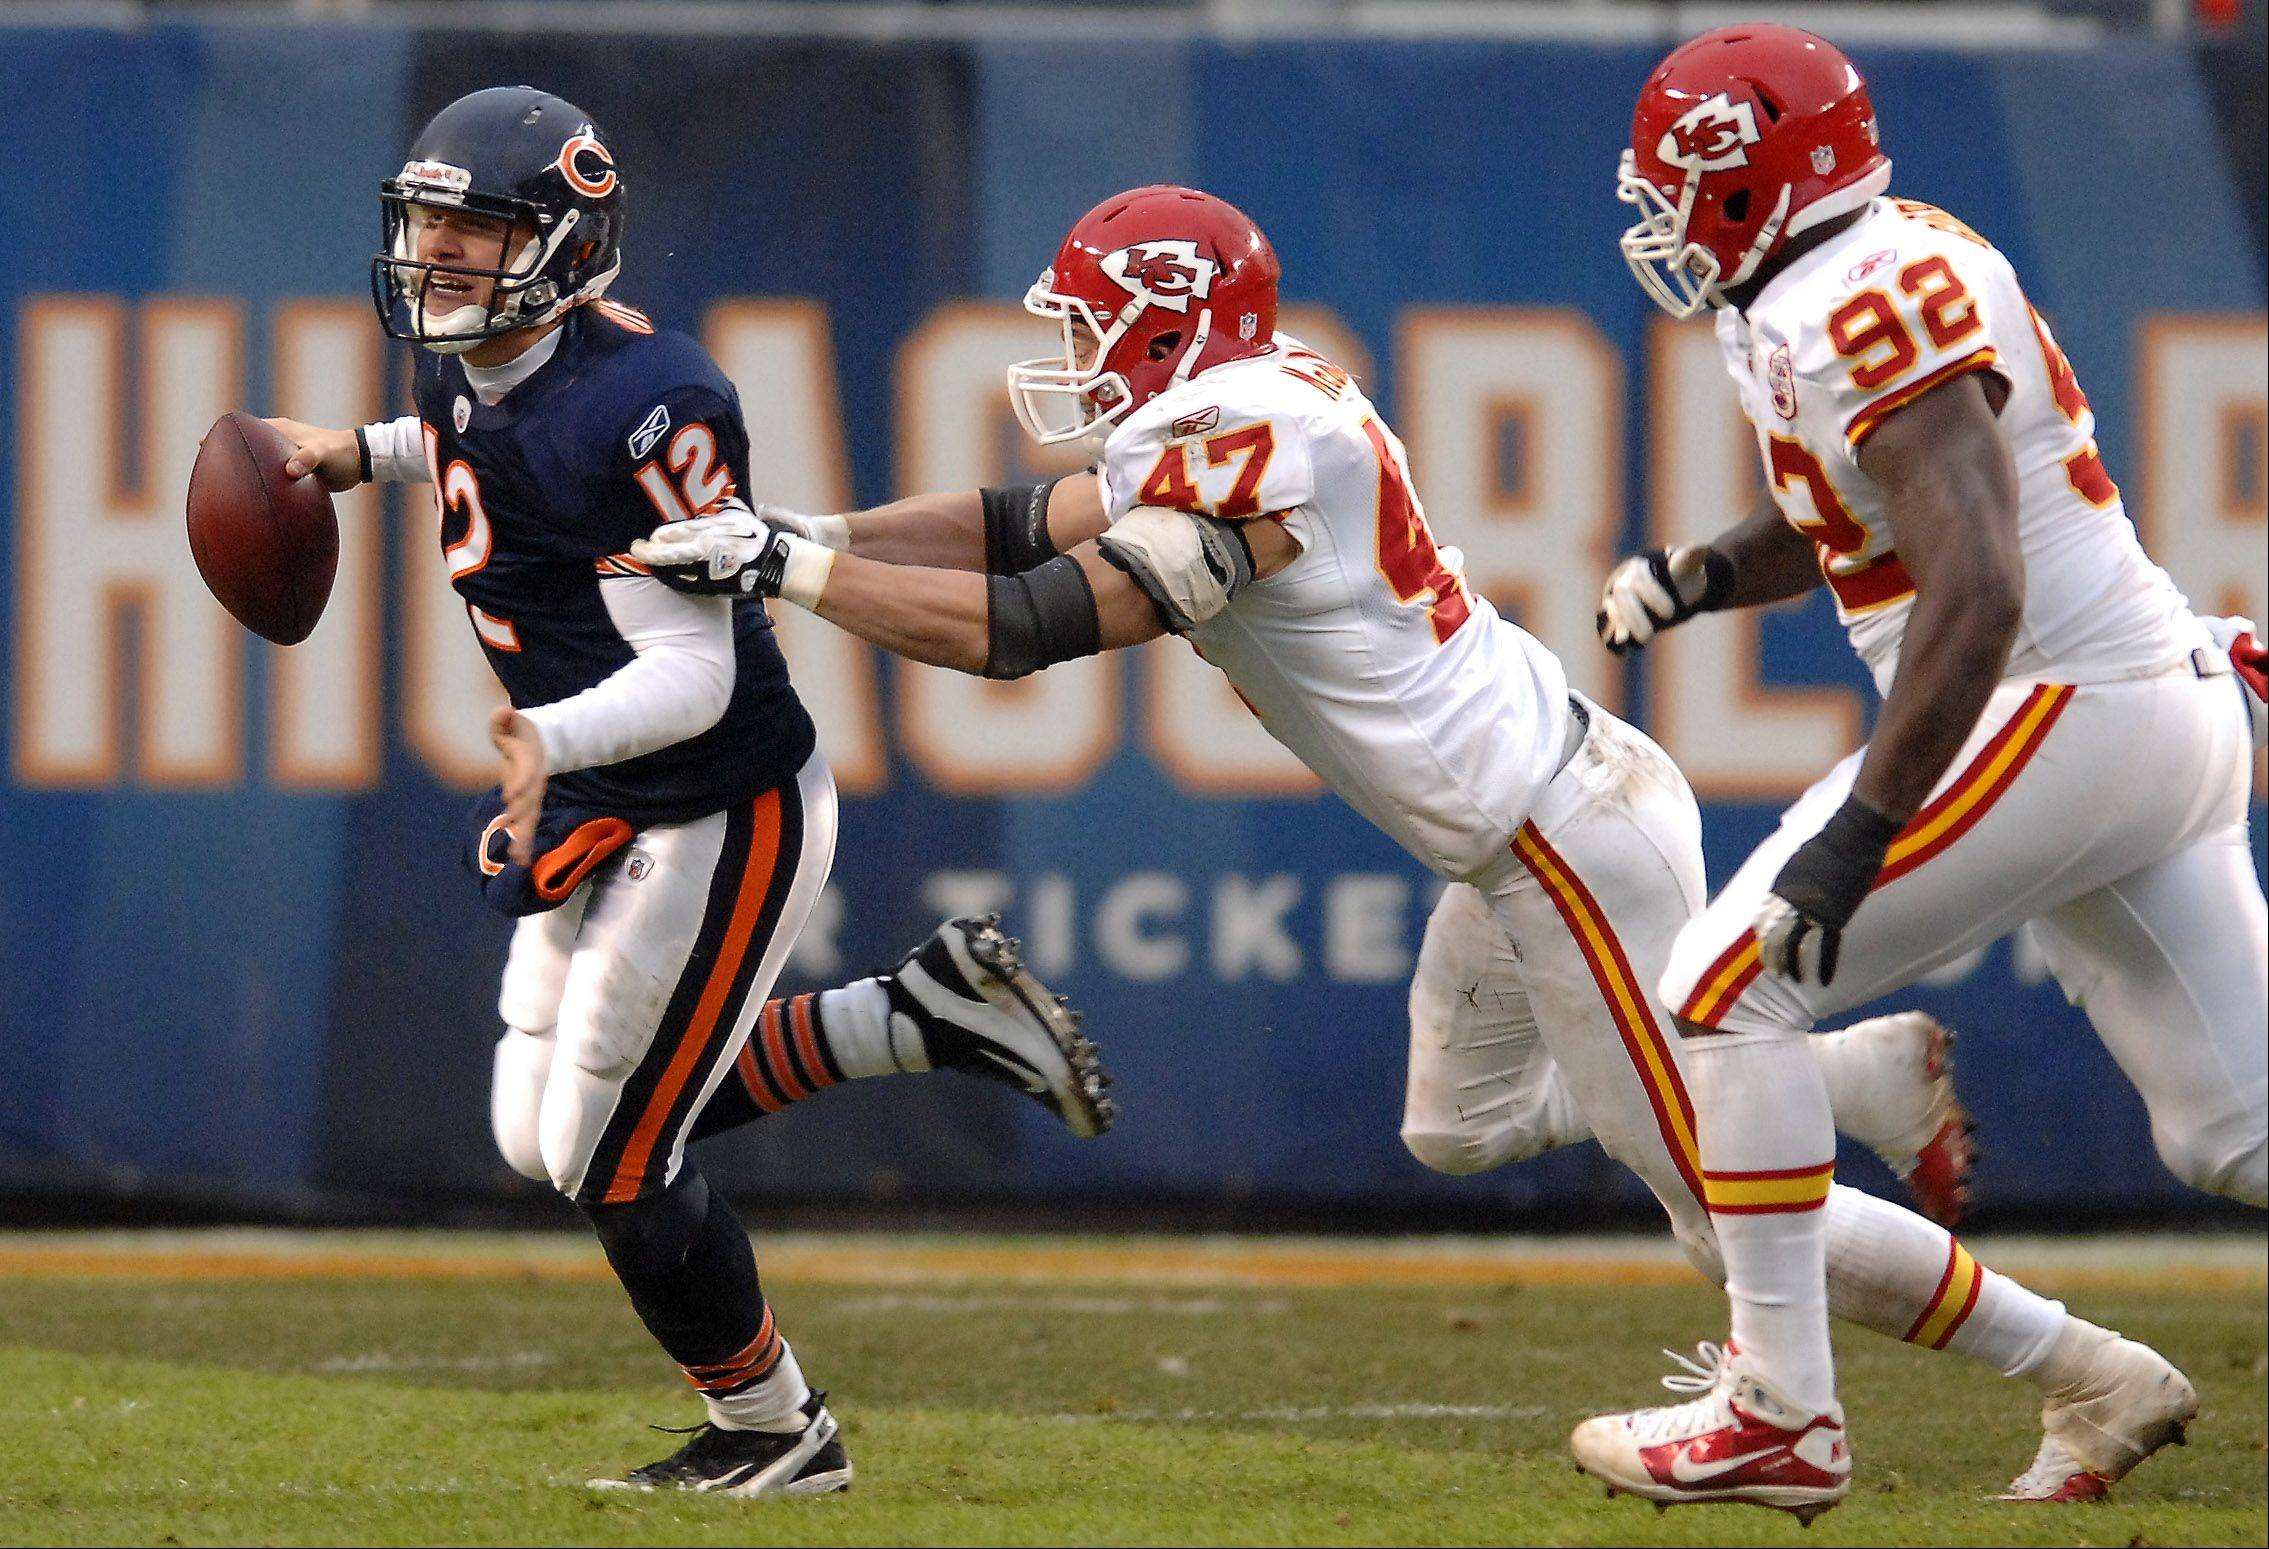 Rick West/rwest@dailyherald.comChicago Bears quarterback Caleb Hanie (12) is pursued by Kansas City Chiefs strong safety Jon McGraw (47) and defensive end Wallace Gilberry (92) during Sunday's game at Soldier Field in Chicago. Gilberry eventually brought him down for a loss.